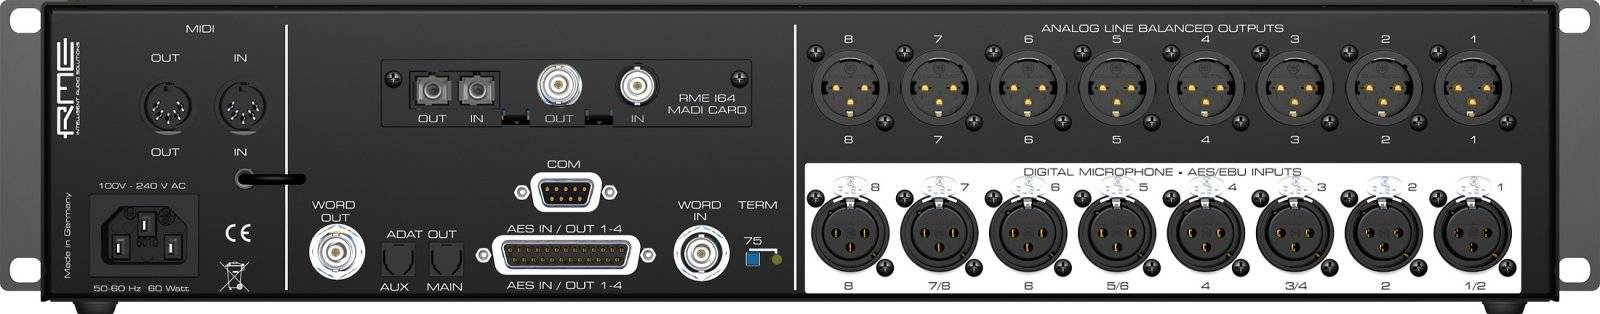 RME DMC842 8-Channel Digital Mic Preamp dmc-842 Product Image 3